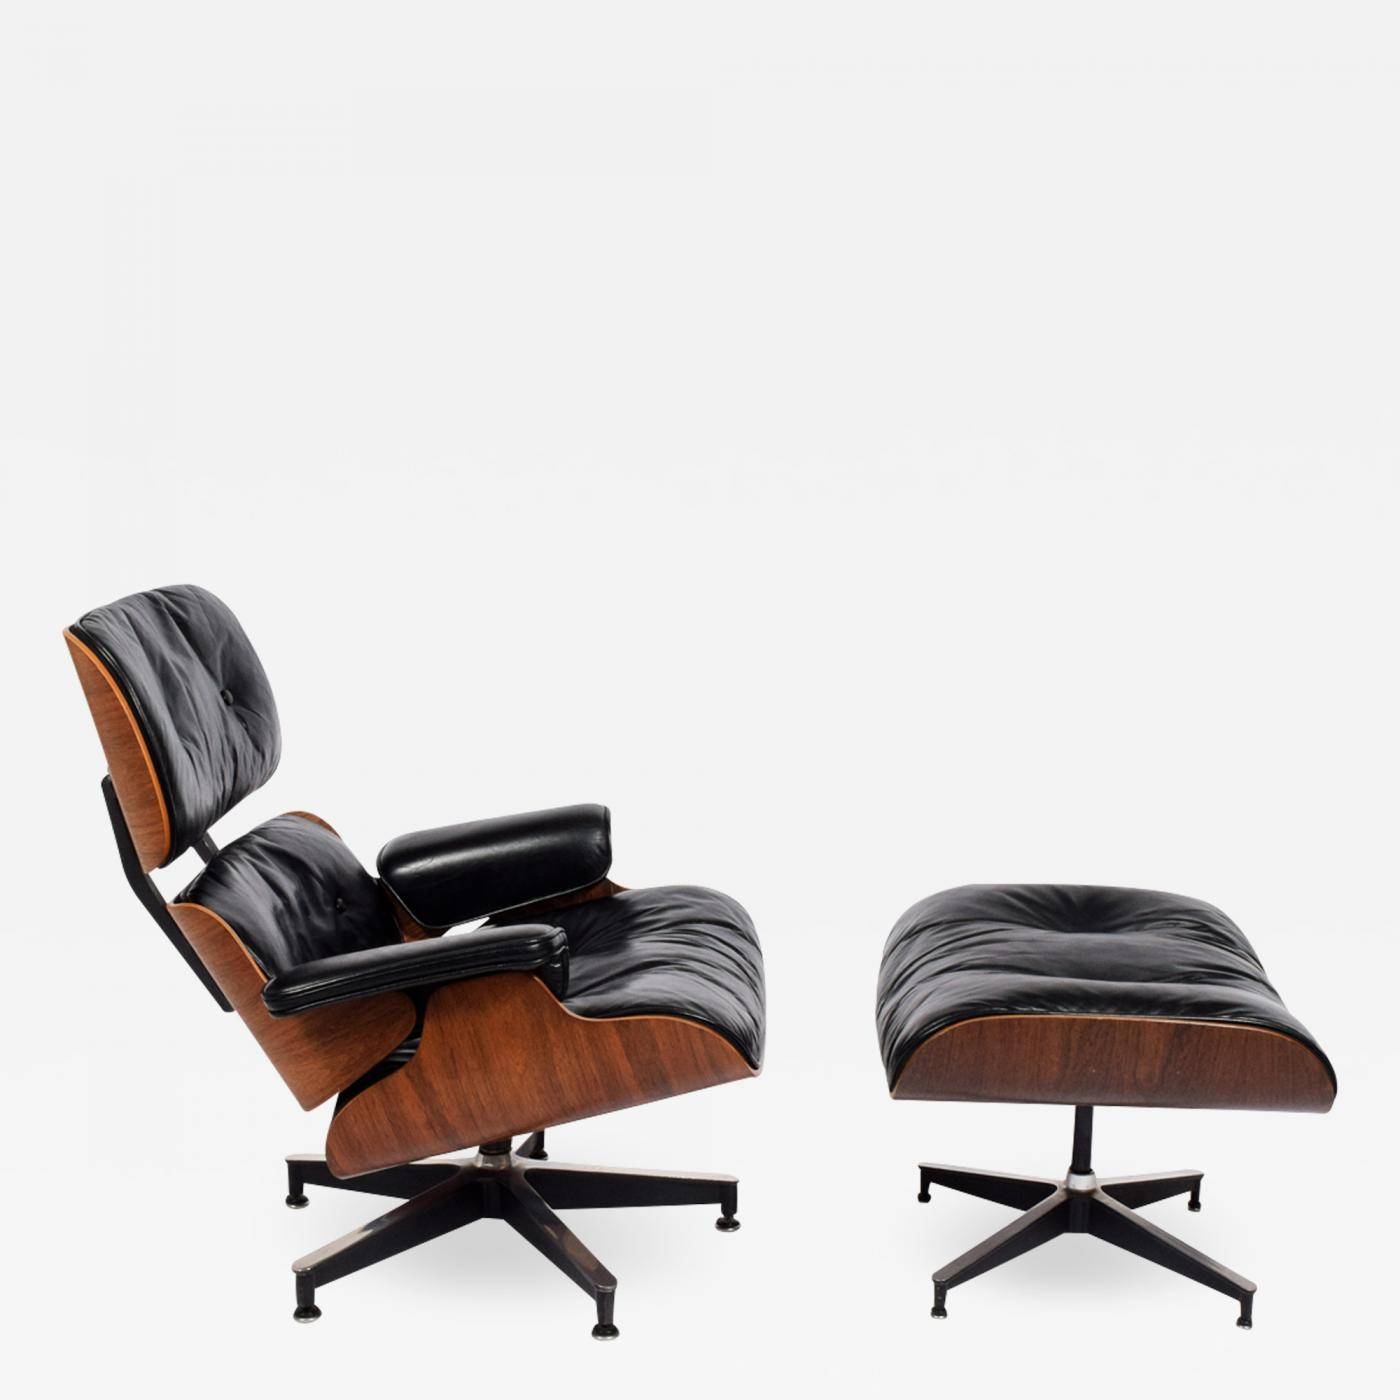 Charles Eames Lounge Chair Charles Eames - Rosewood Lounge Chair And Ottoman 670/671 By Charles Eames For Herman Miller